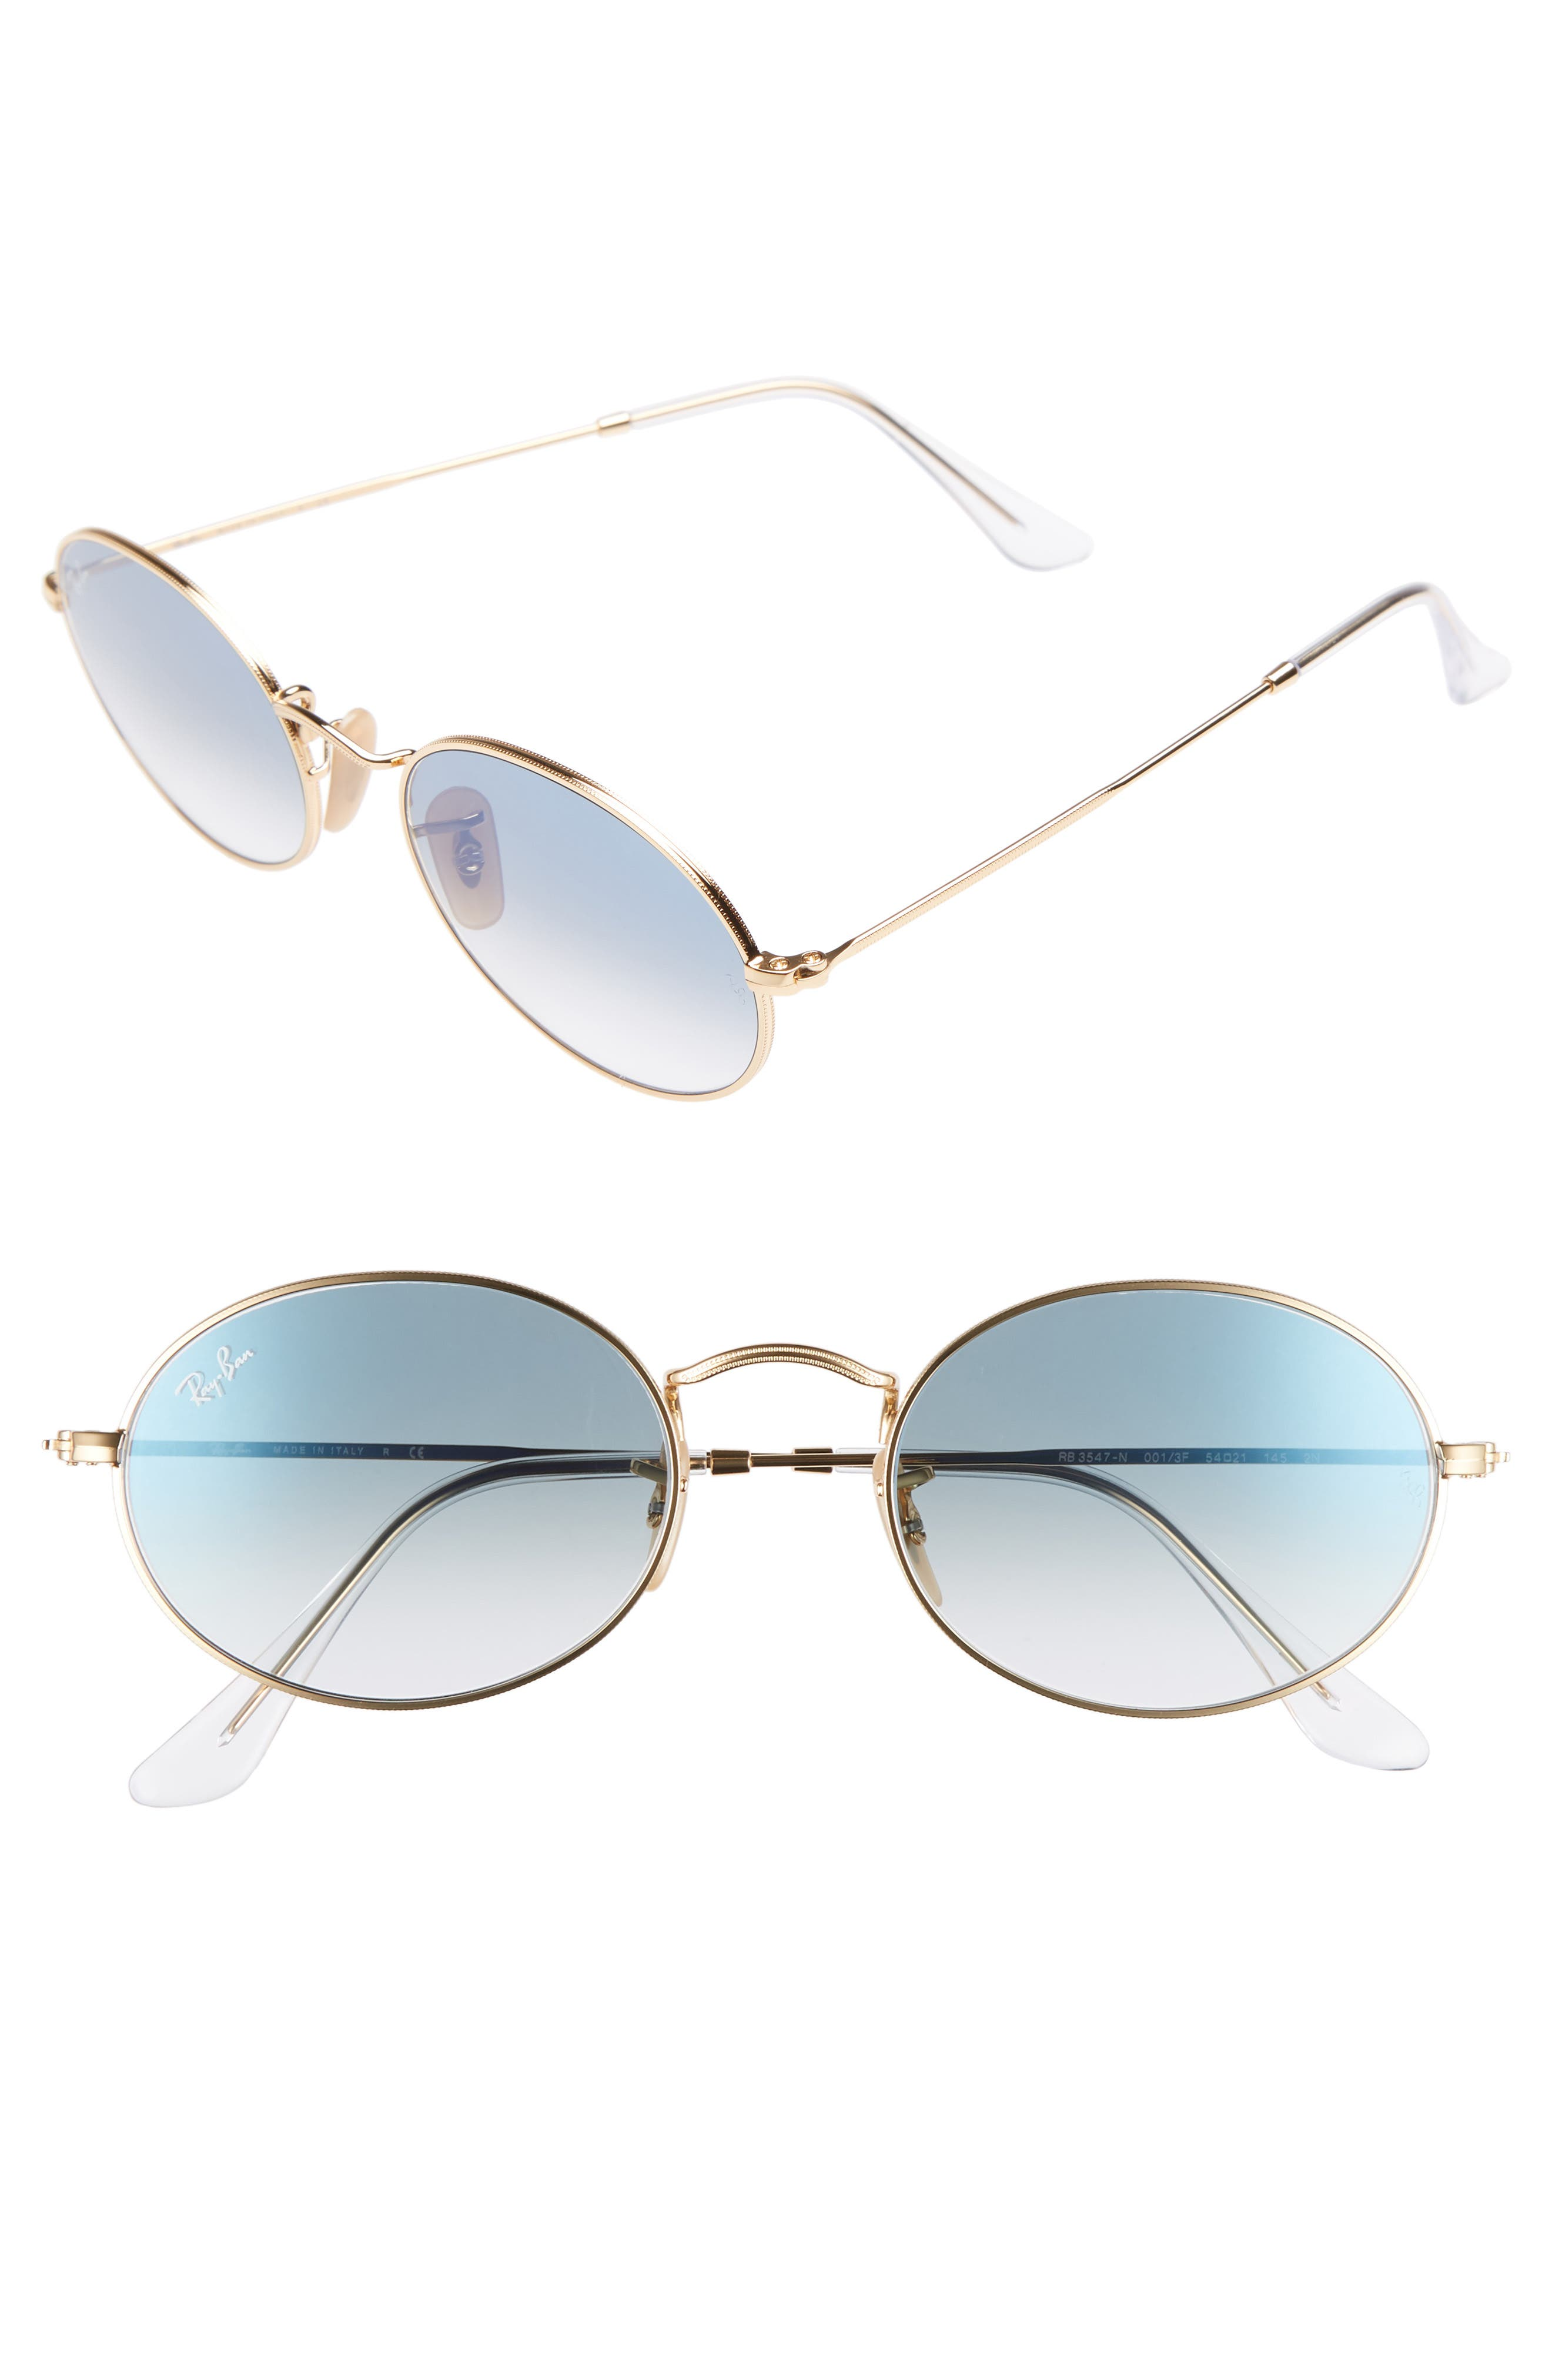 54mm Oval Sunglasses,                         Main,                         color, Gold